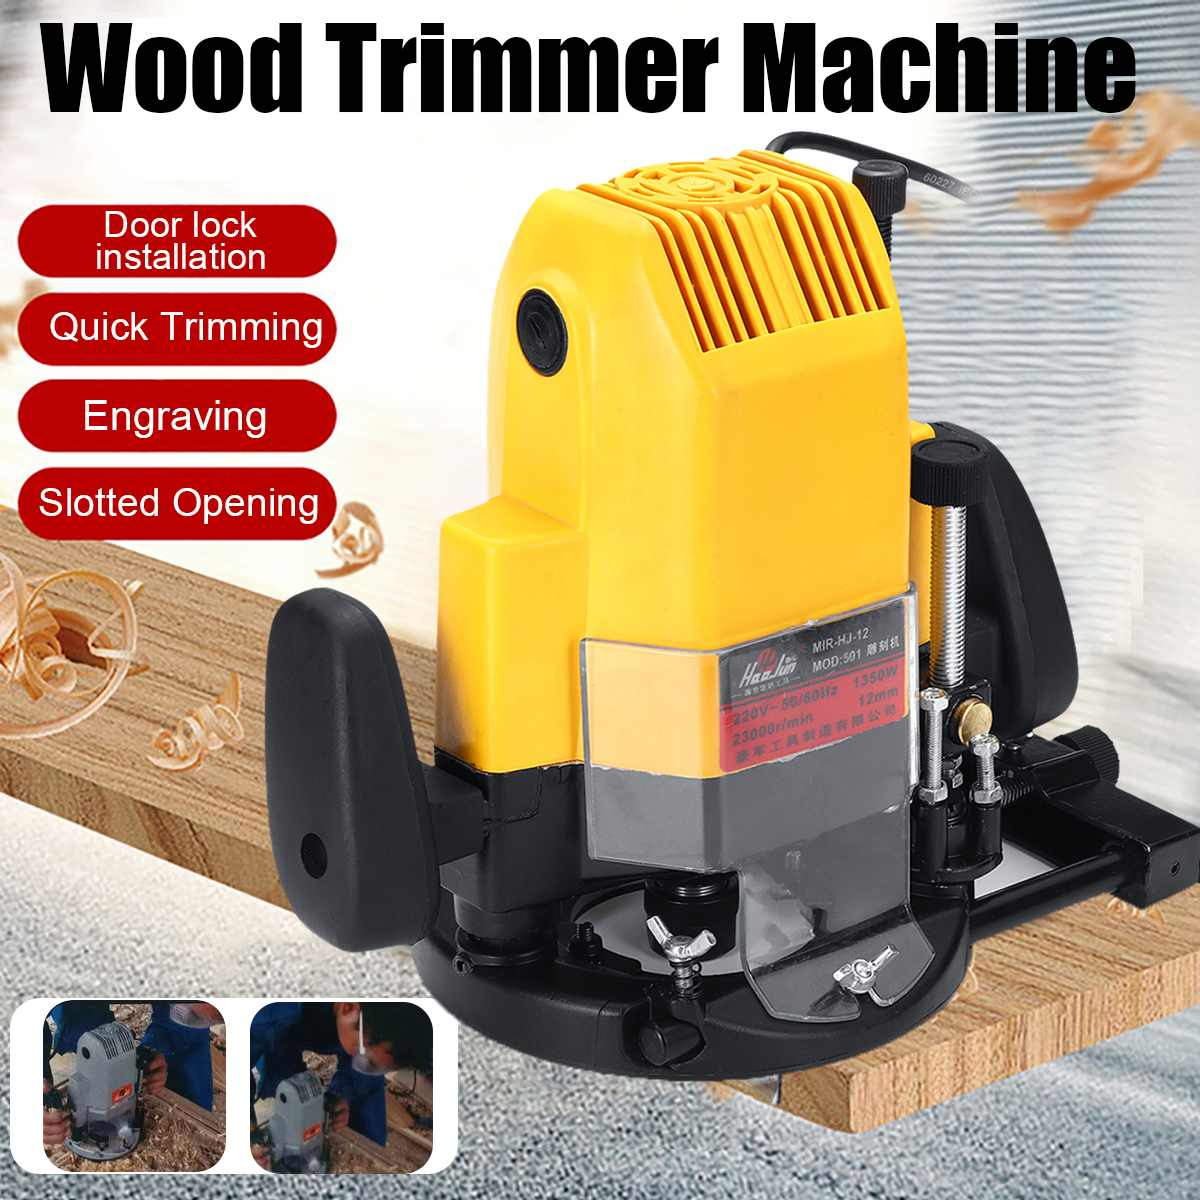 1350W 220V Electric Plunge Router 1/2 Wood Routing Machine Collet Electric Router Woodworking Trimmer Trimming Machine1350W 220V Electric Plunge Router 1/2 Wood Routing Machine Collet Electric Router Woodworking Trimmer Trimming Machine